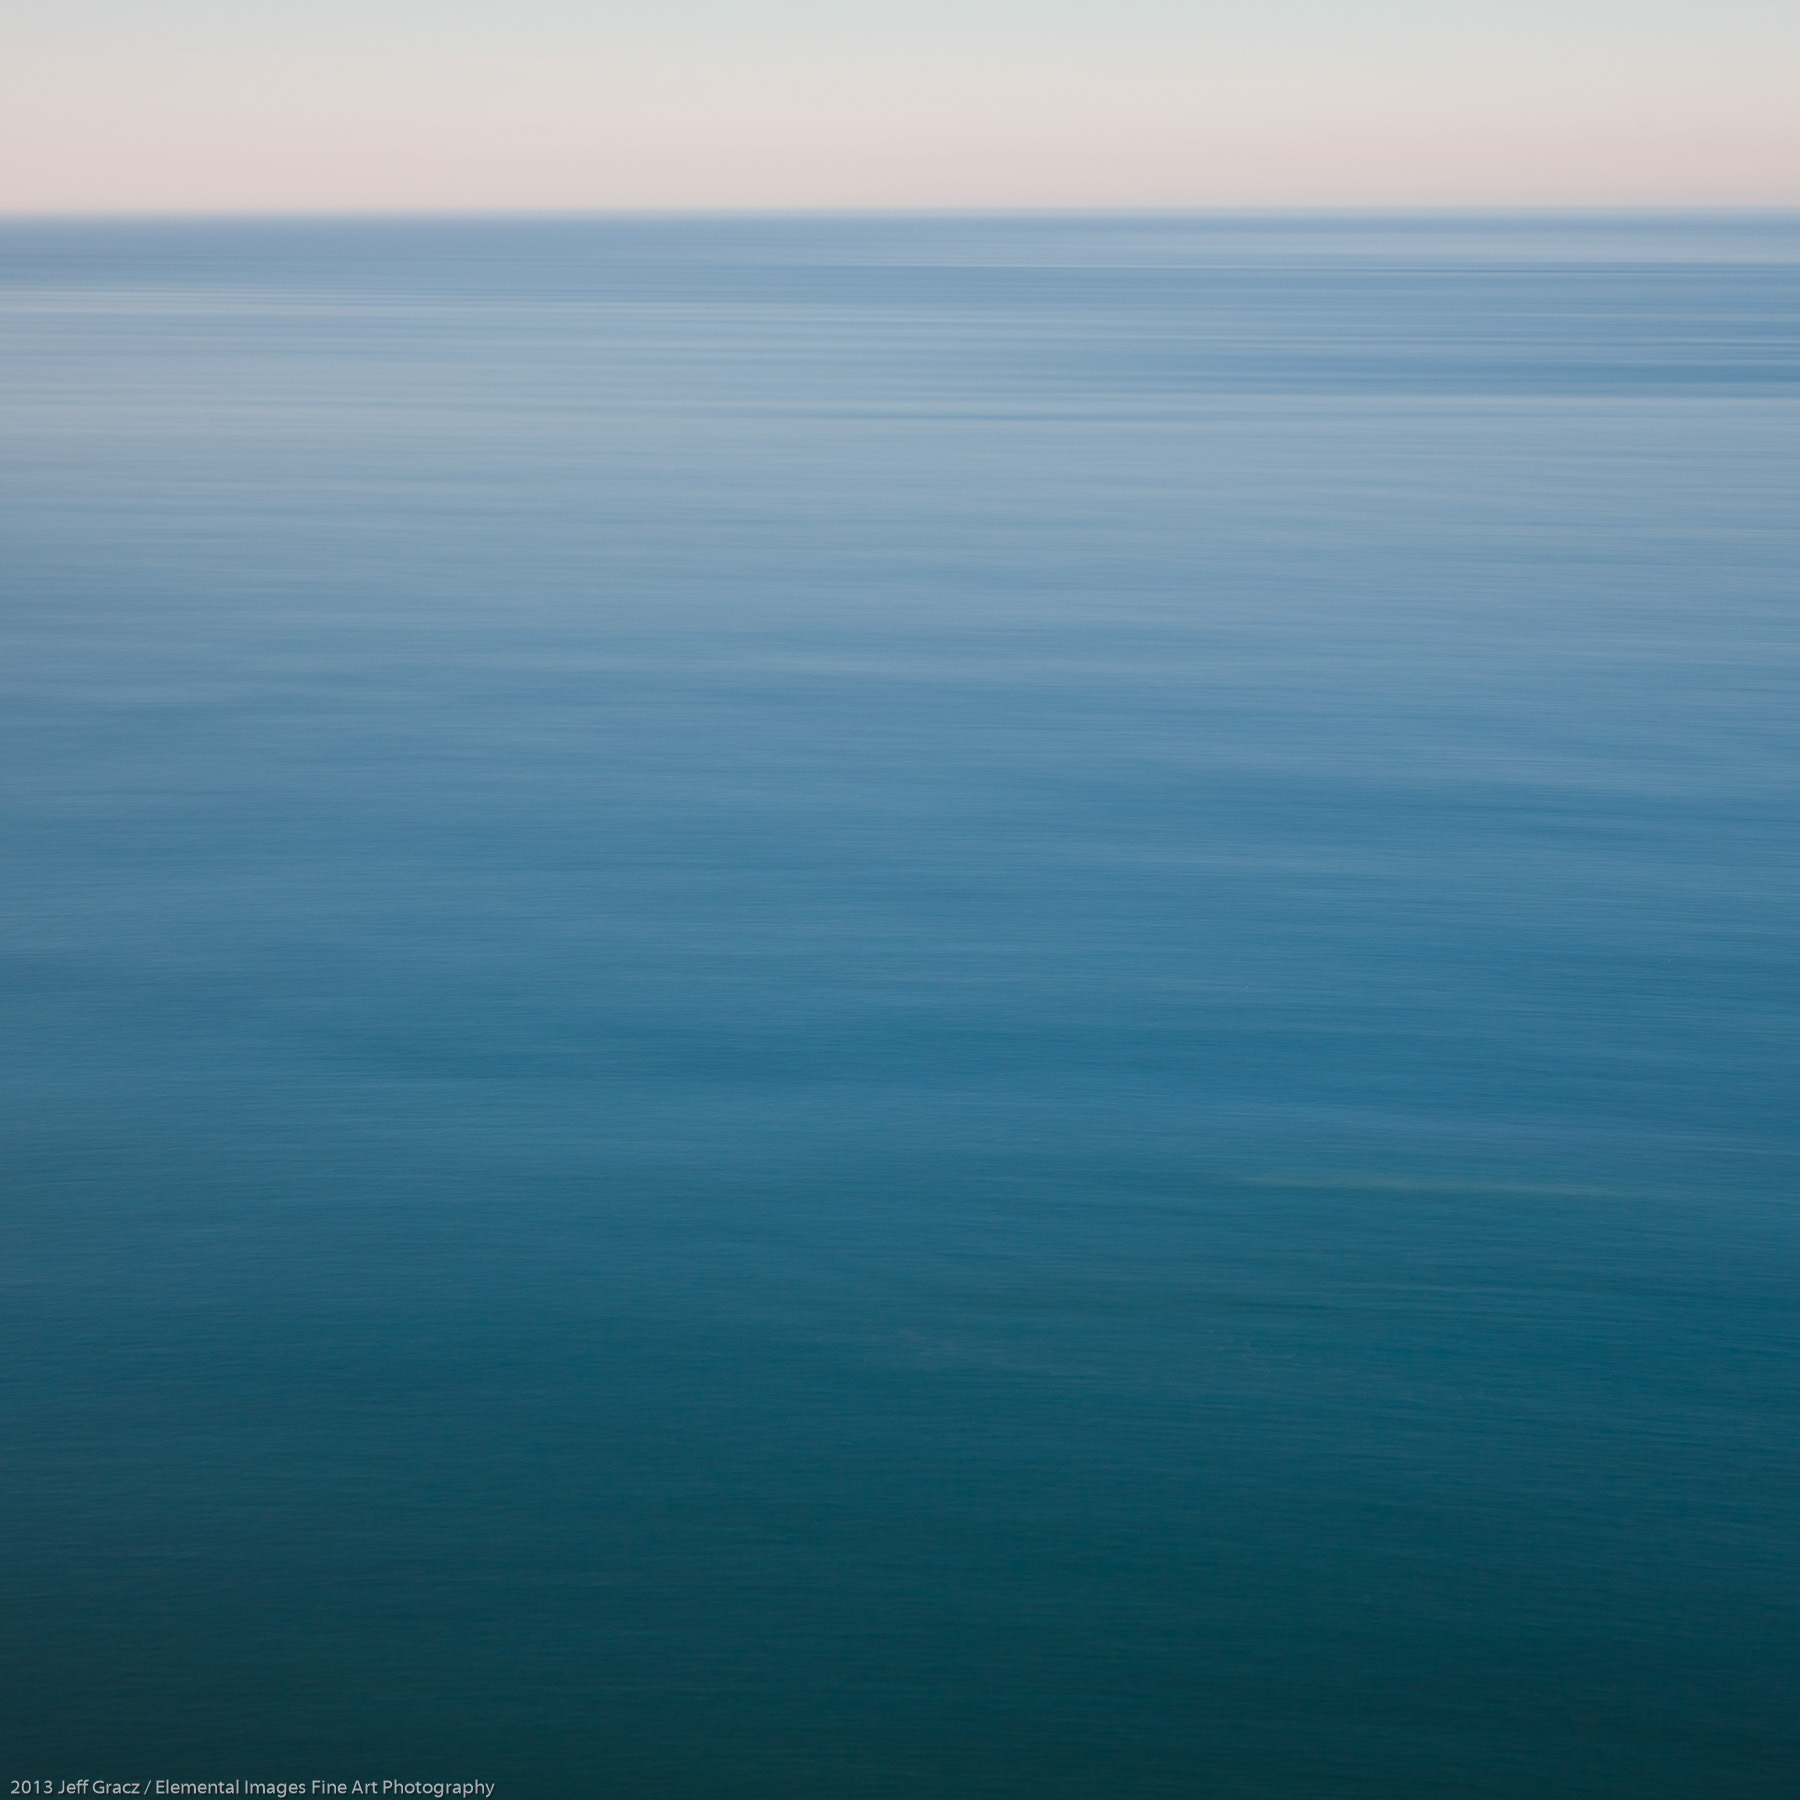 Sea and Sky XXVIII | Boiler Bay State Park | OR | USA - © 2013 Jeff Gracz / Elemental Images Fine Art Photography - All Rights Reserved Worldwide